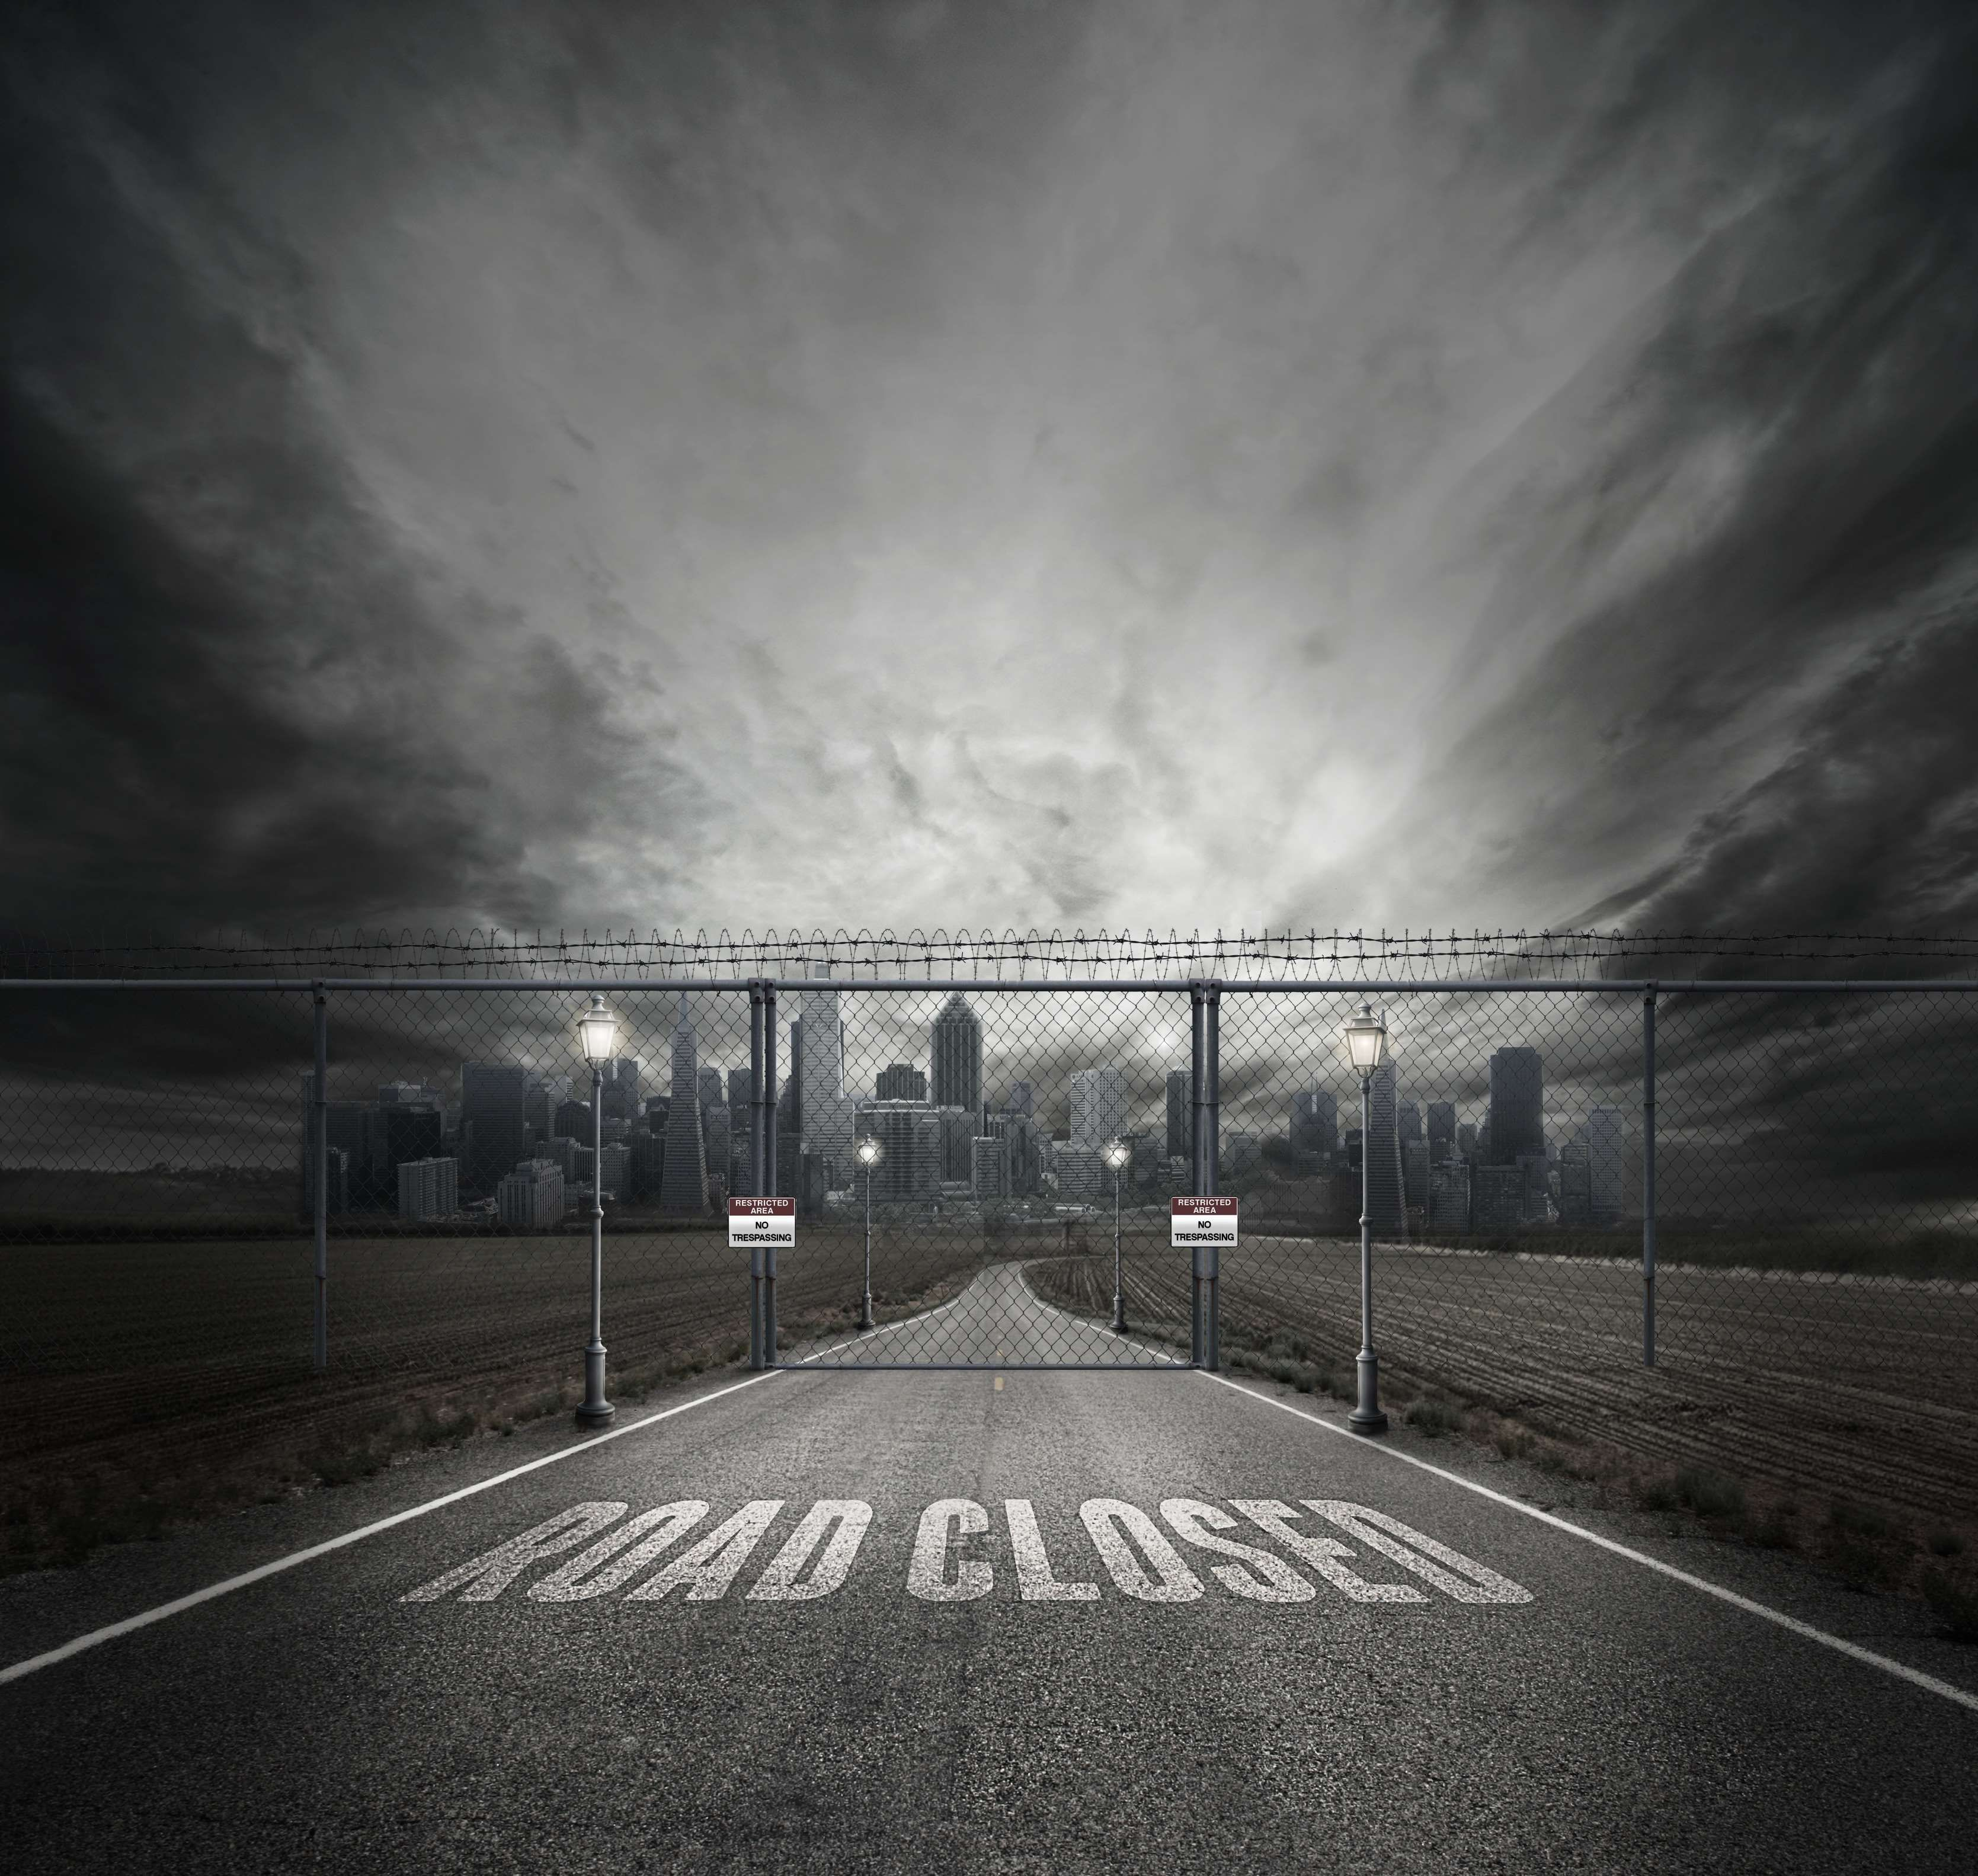 Asphalt Barbed Wires Buildings City Dark Dramatic Empty Overcast Perspective Road Urban In 2020 Picsart Background Dslr Background Images Background Images